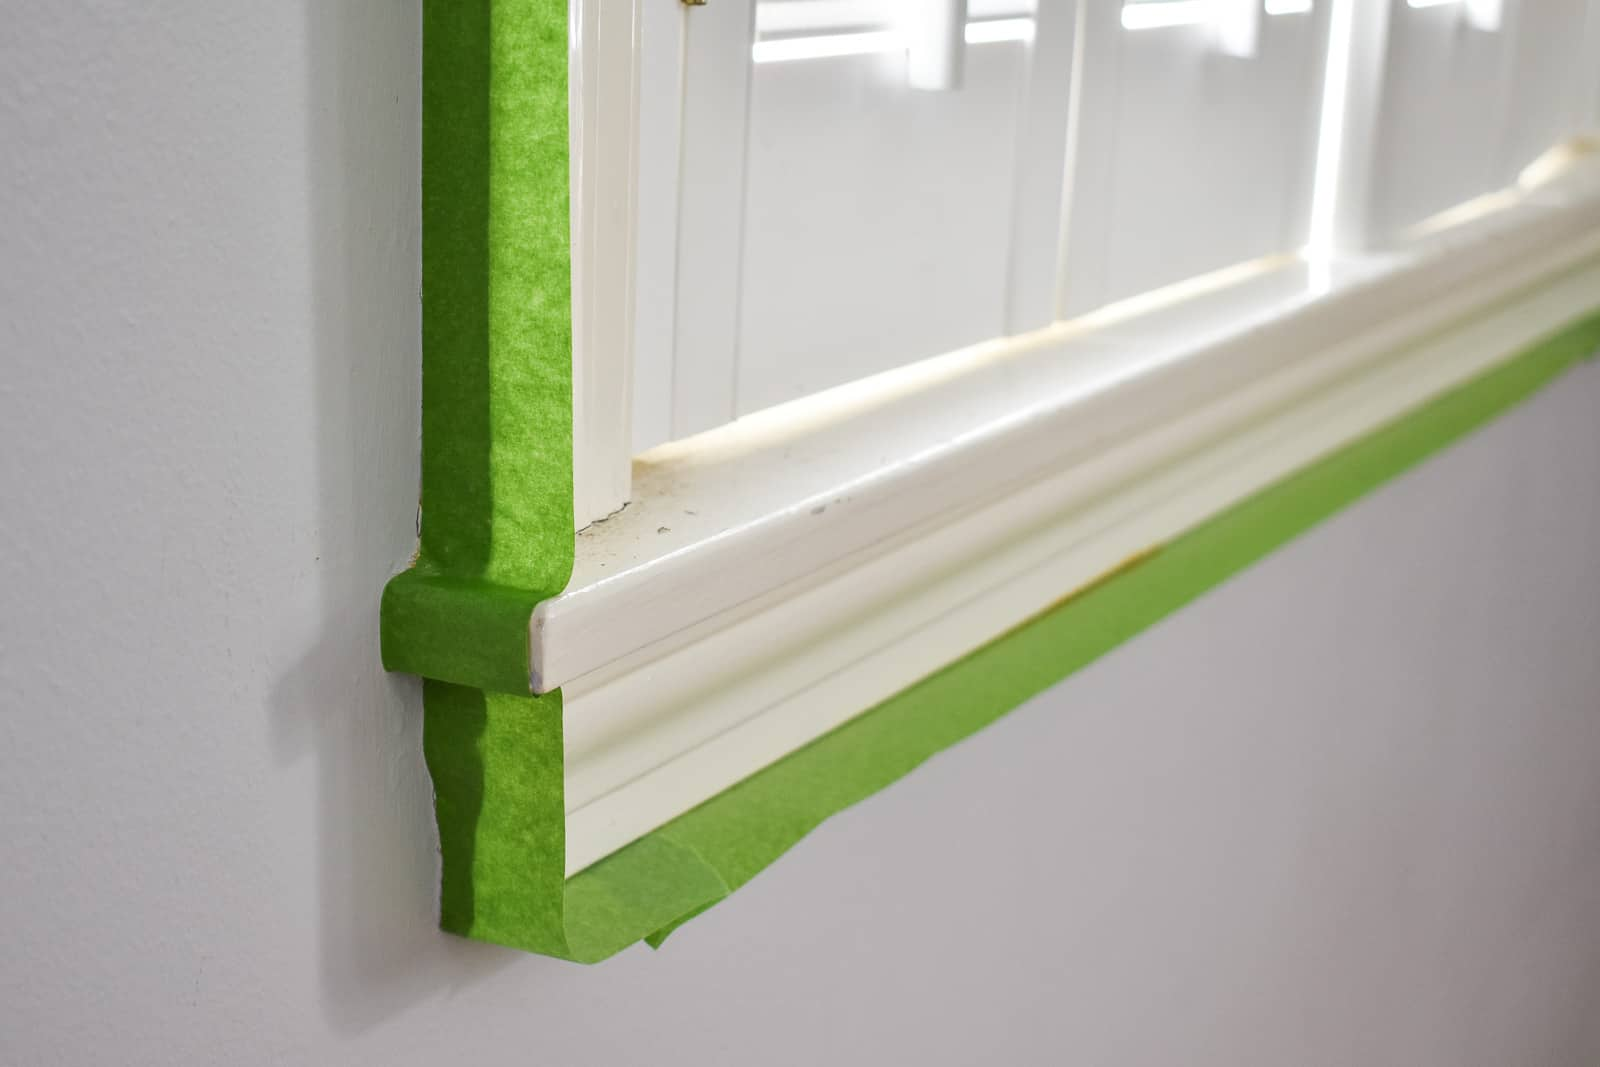 frogtape around the window frame